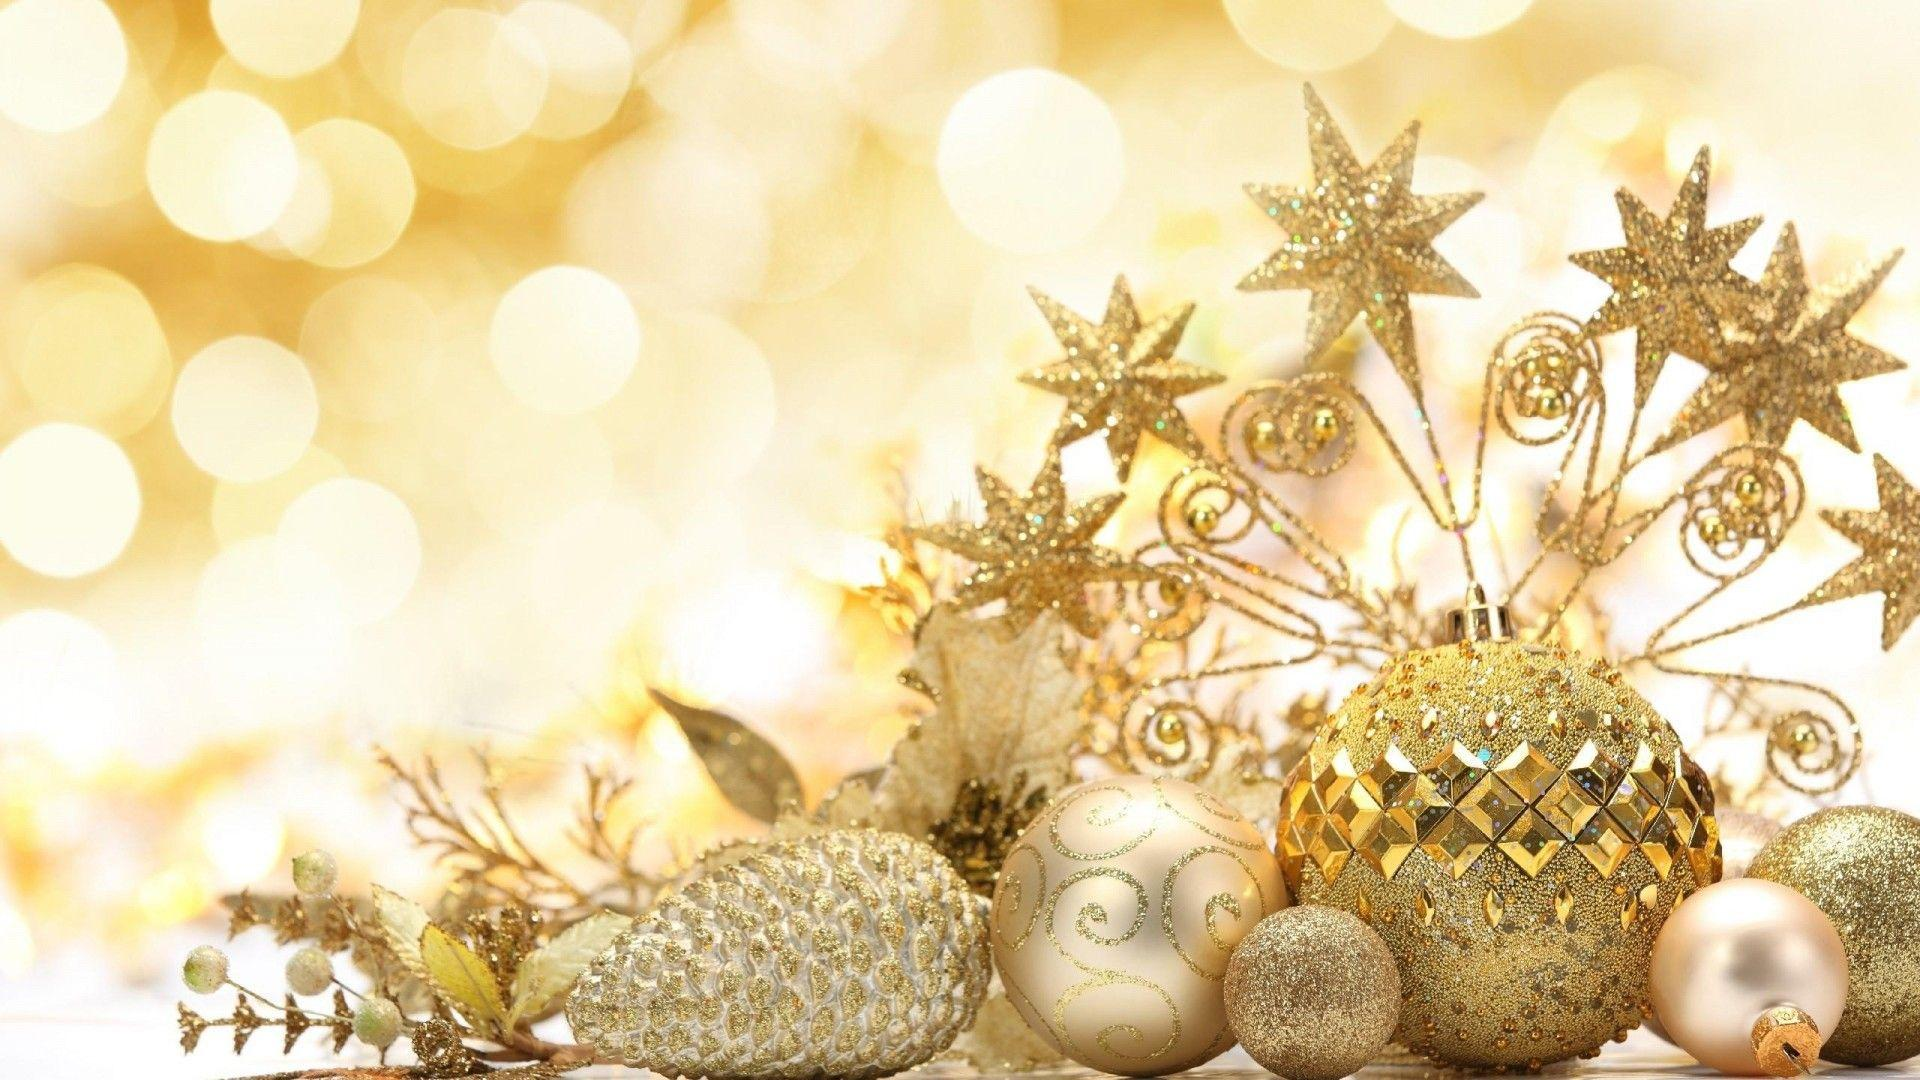 christmas decorations HD Wallpapers